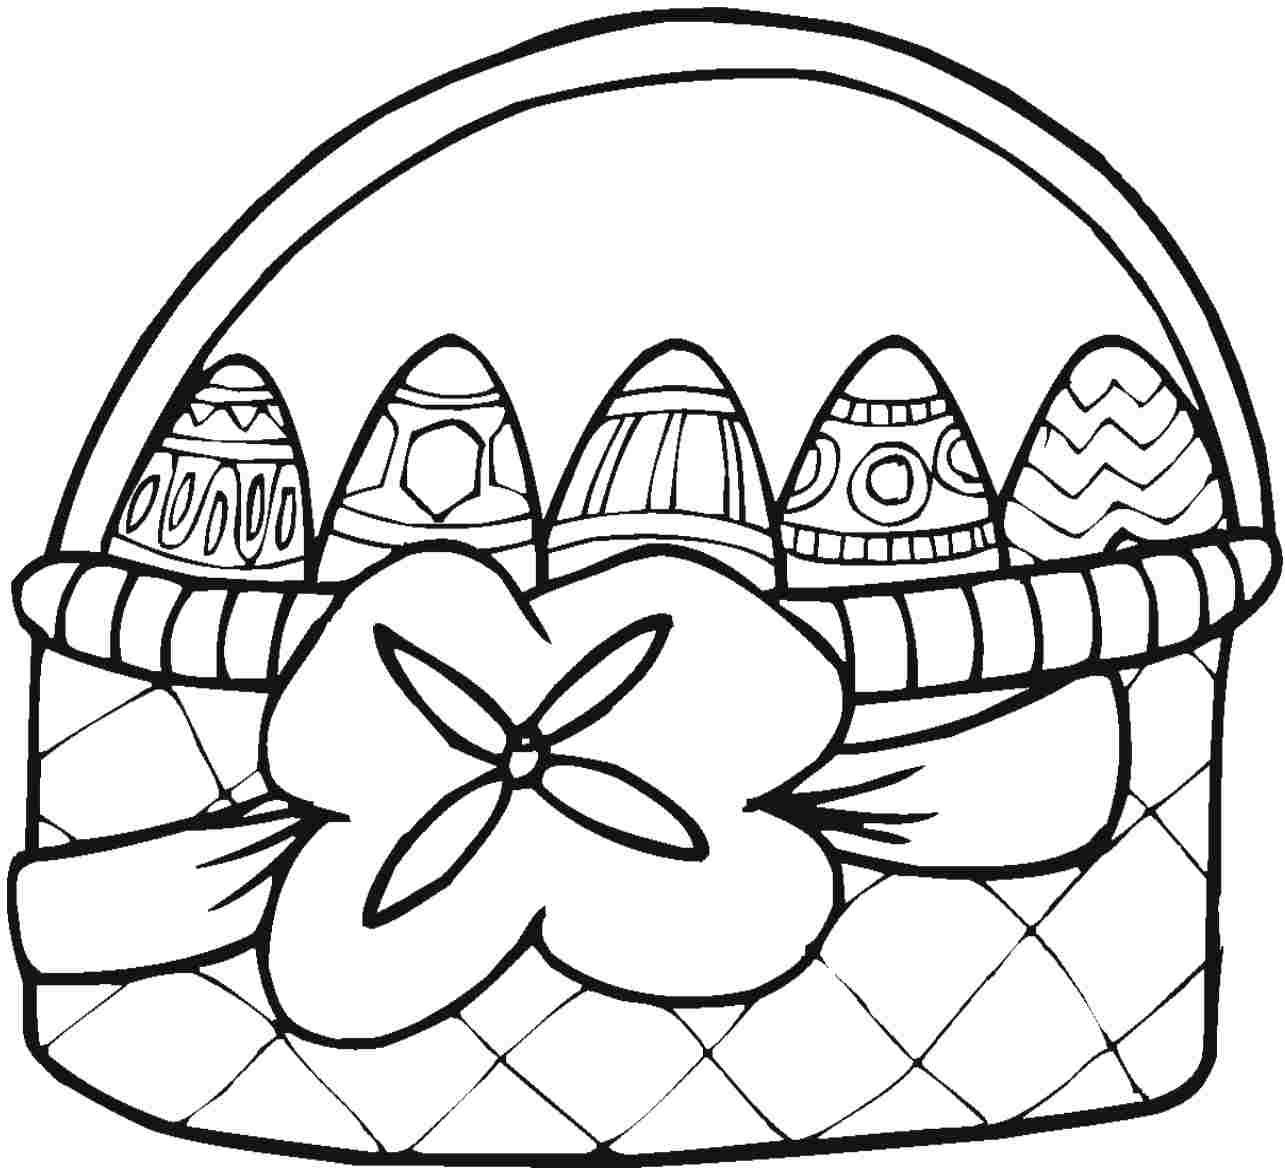 basket of easter eggs coloring page easter pages to color coloring pages part 2 easter of page coloring basket eggs